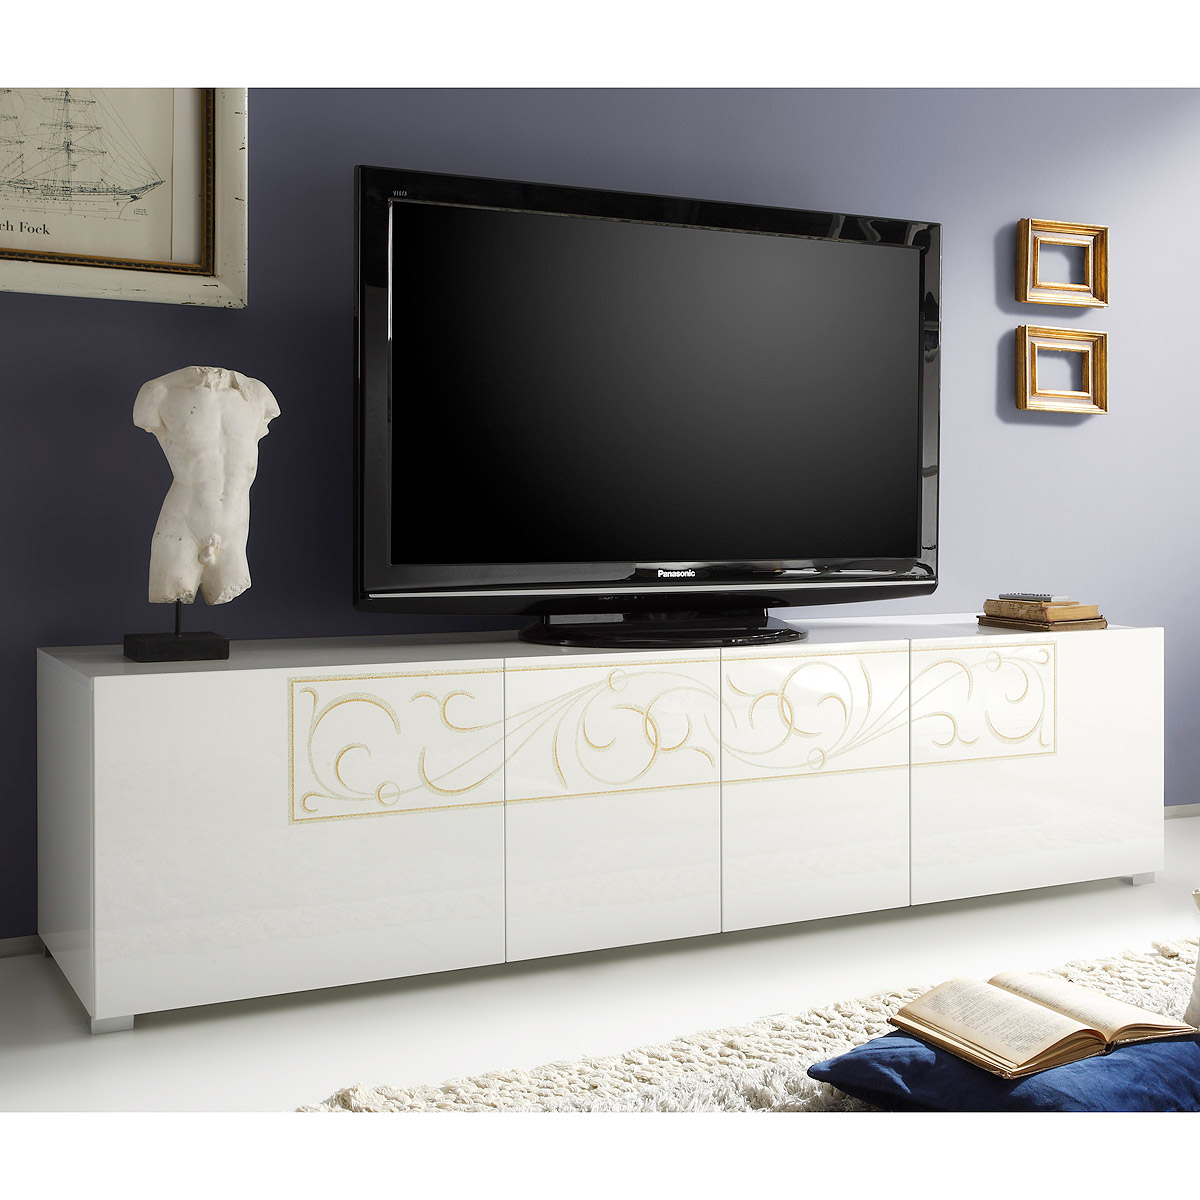 tv element padua lowboard kommode hochglanz wei lackiert mit siebdruck ebay. Black Bedroom Furniture Sets. Home Design Ideas